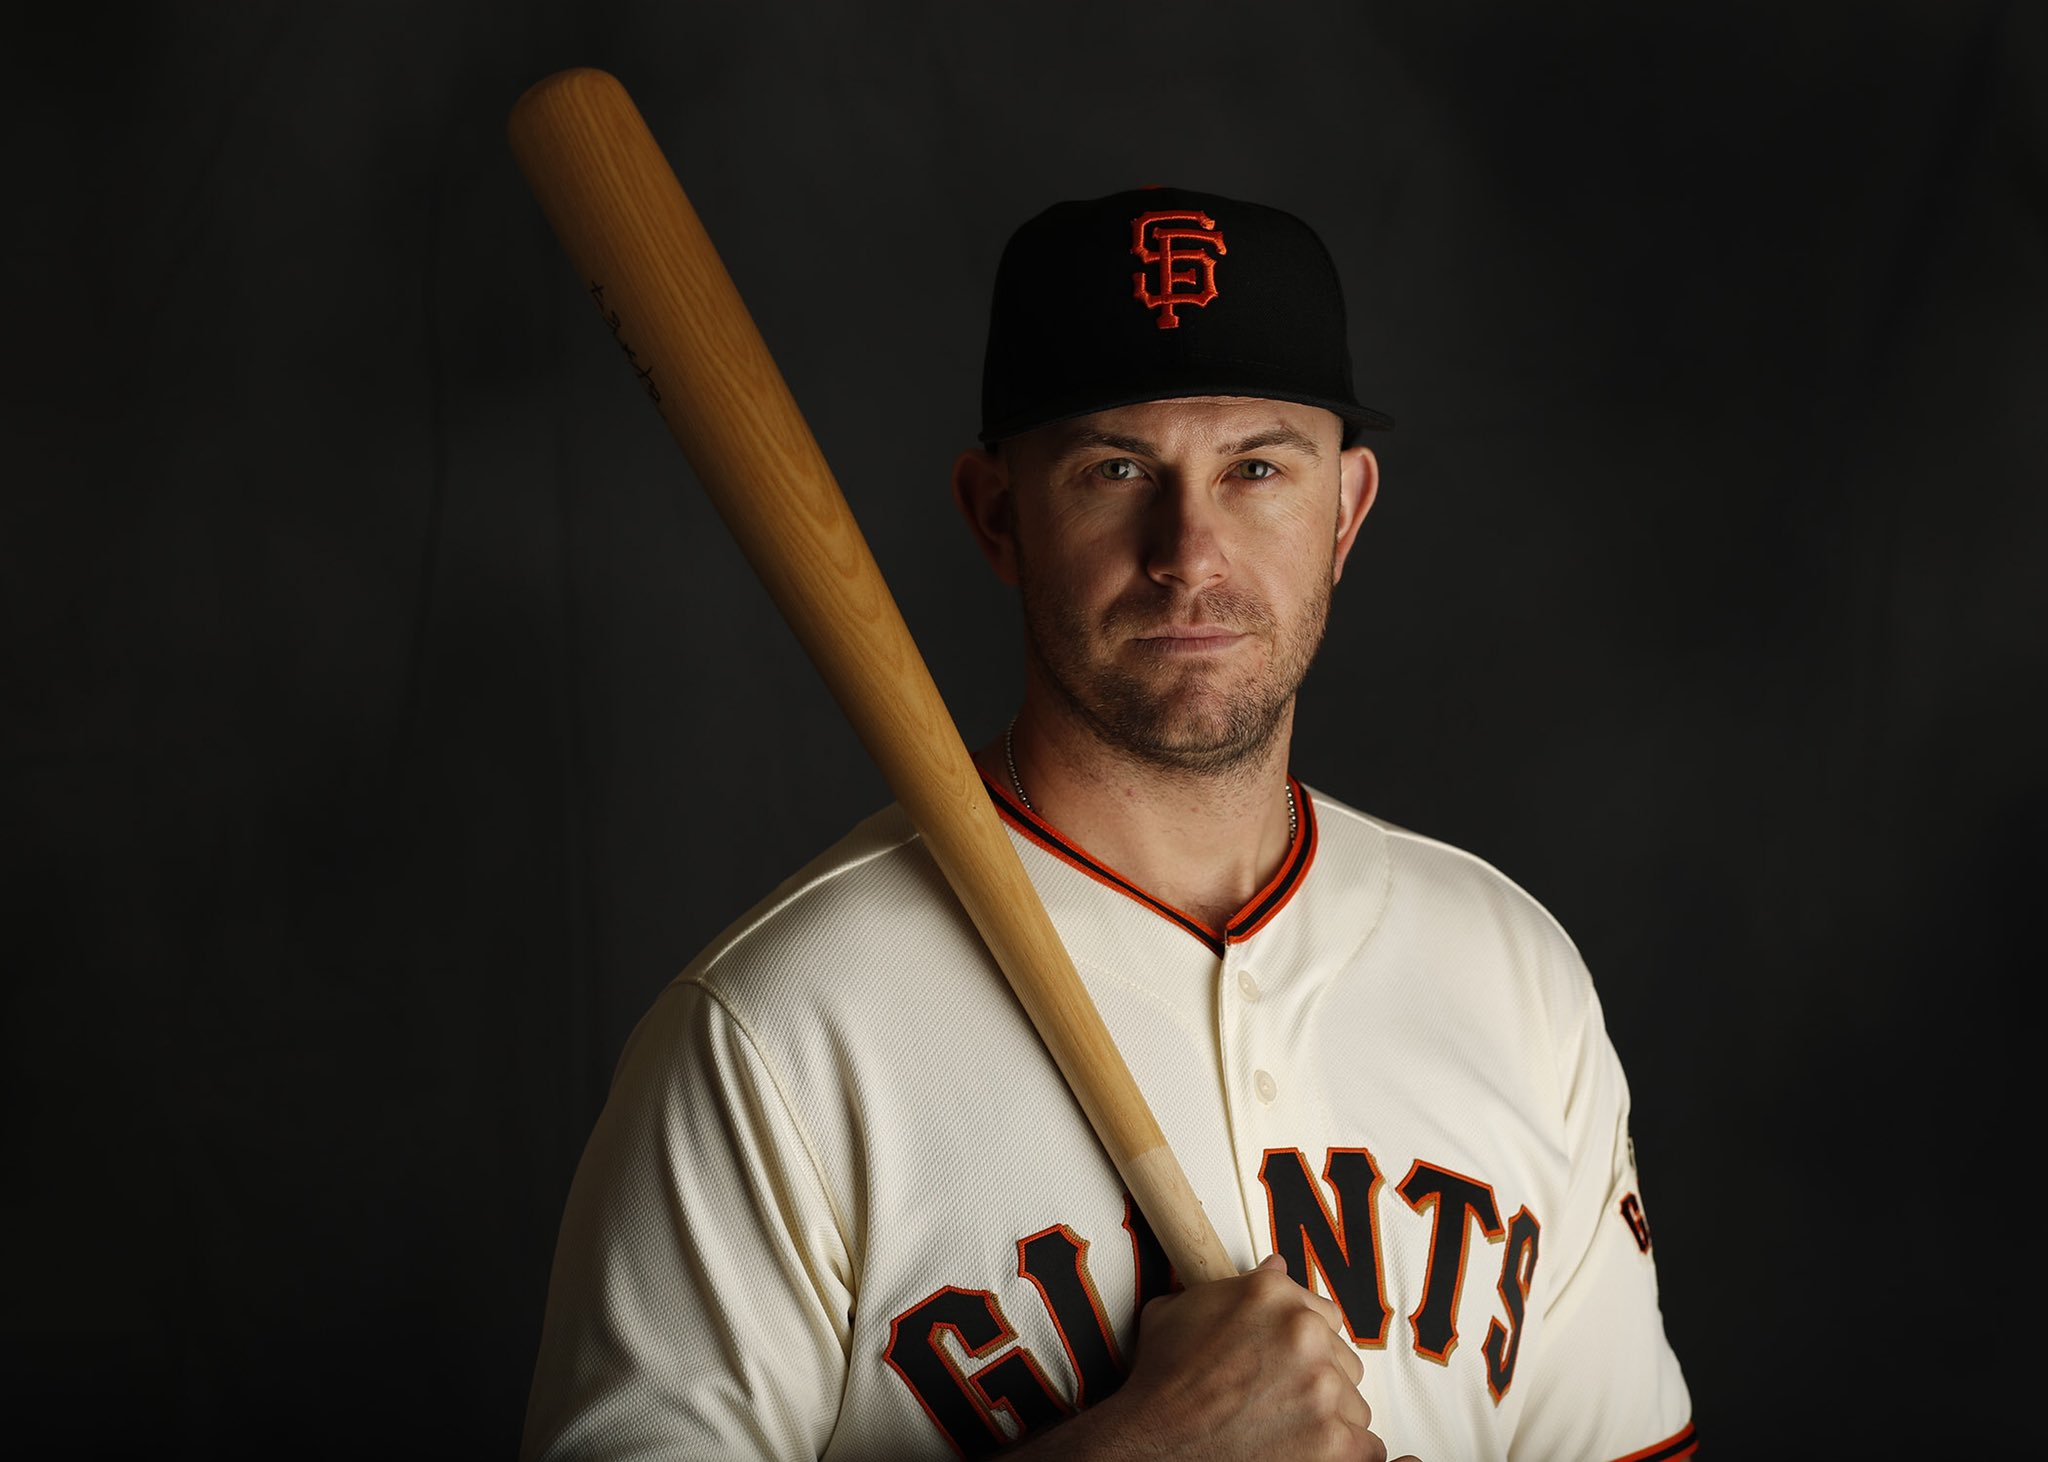 ����  #HelloLongo | #SFGiants https://t.co/ZYv8eCRove